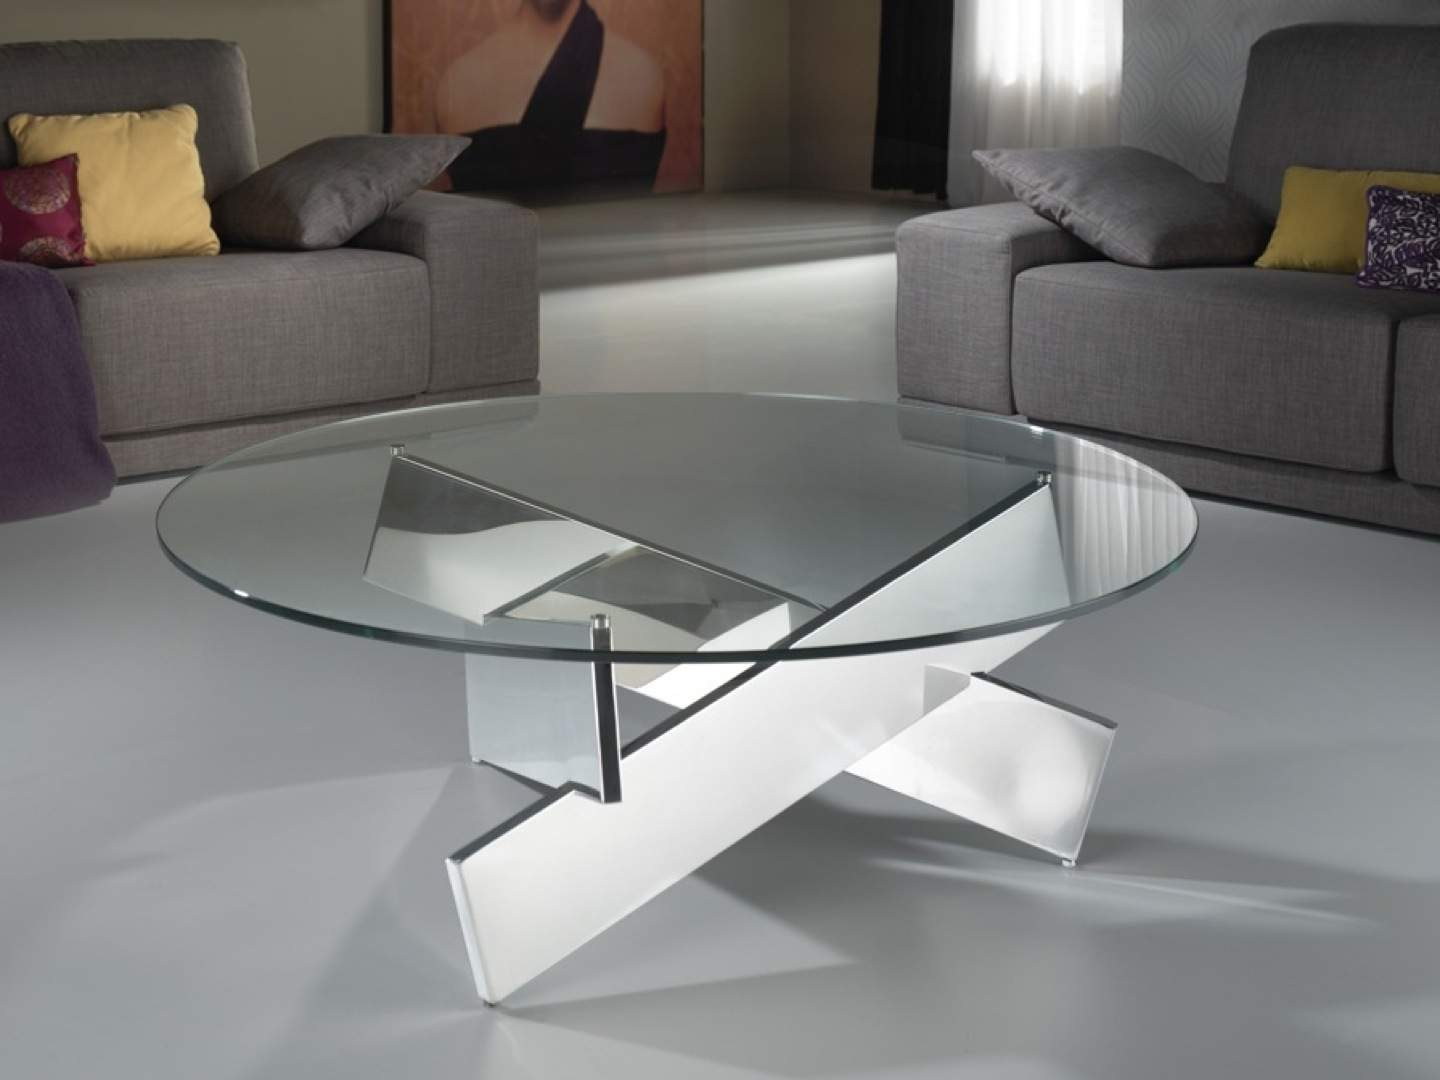 Denver table of Centro ø105x39 Stainless Steel